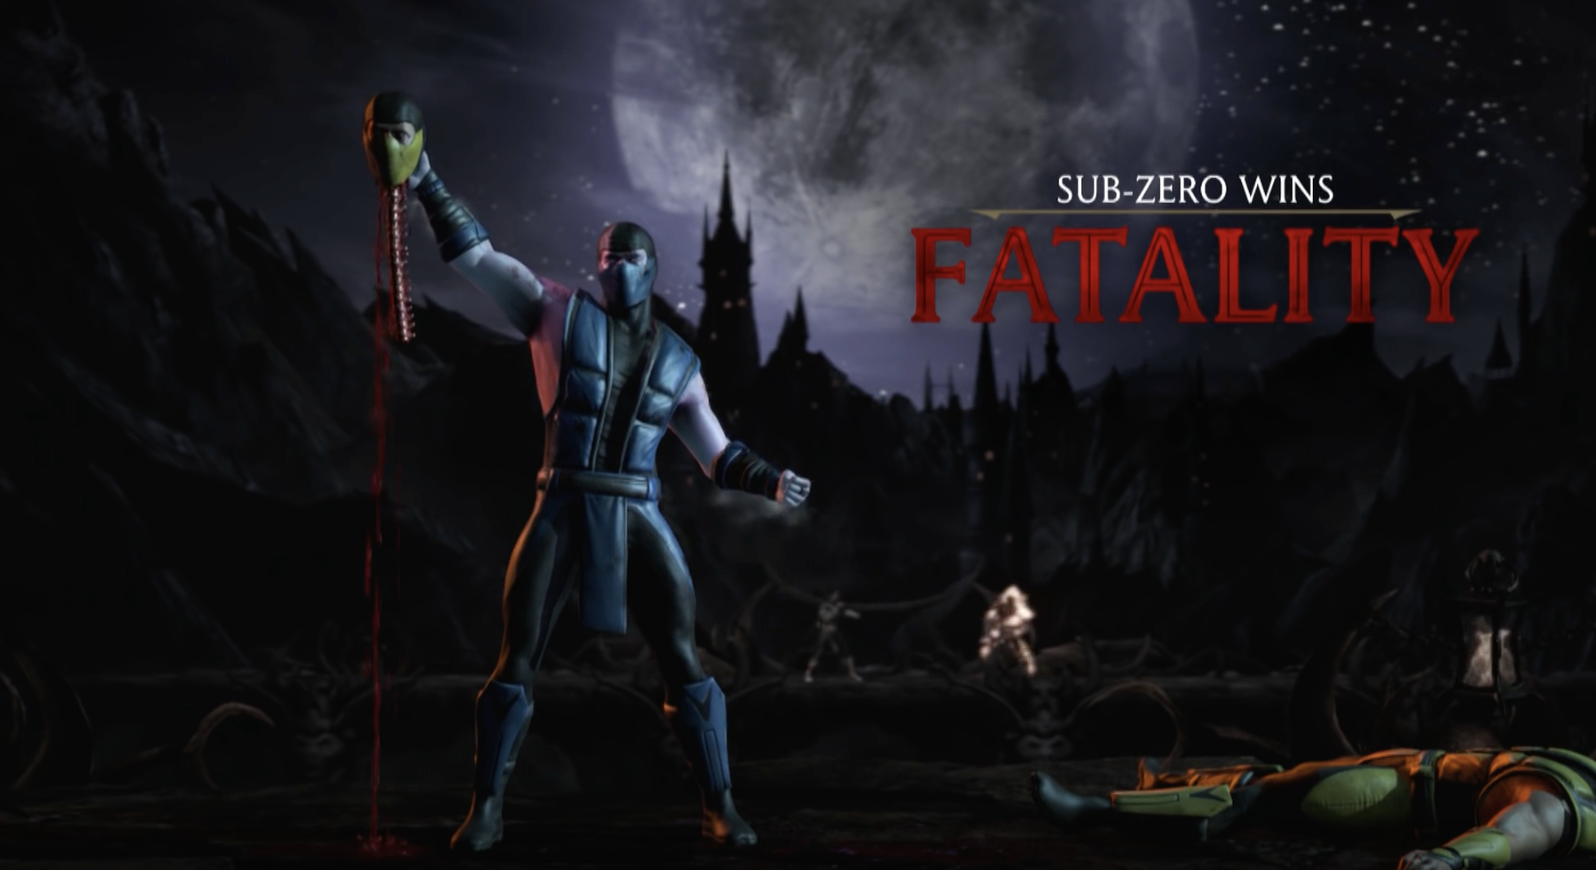 The same exact fatality performed as the arcade original above, but this time in high definition graphics. (Mortal Kombat XL. - PS4/X1 2016.)